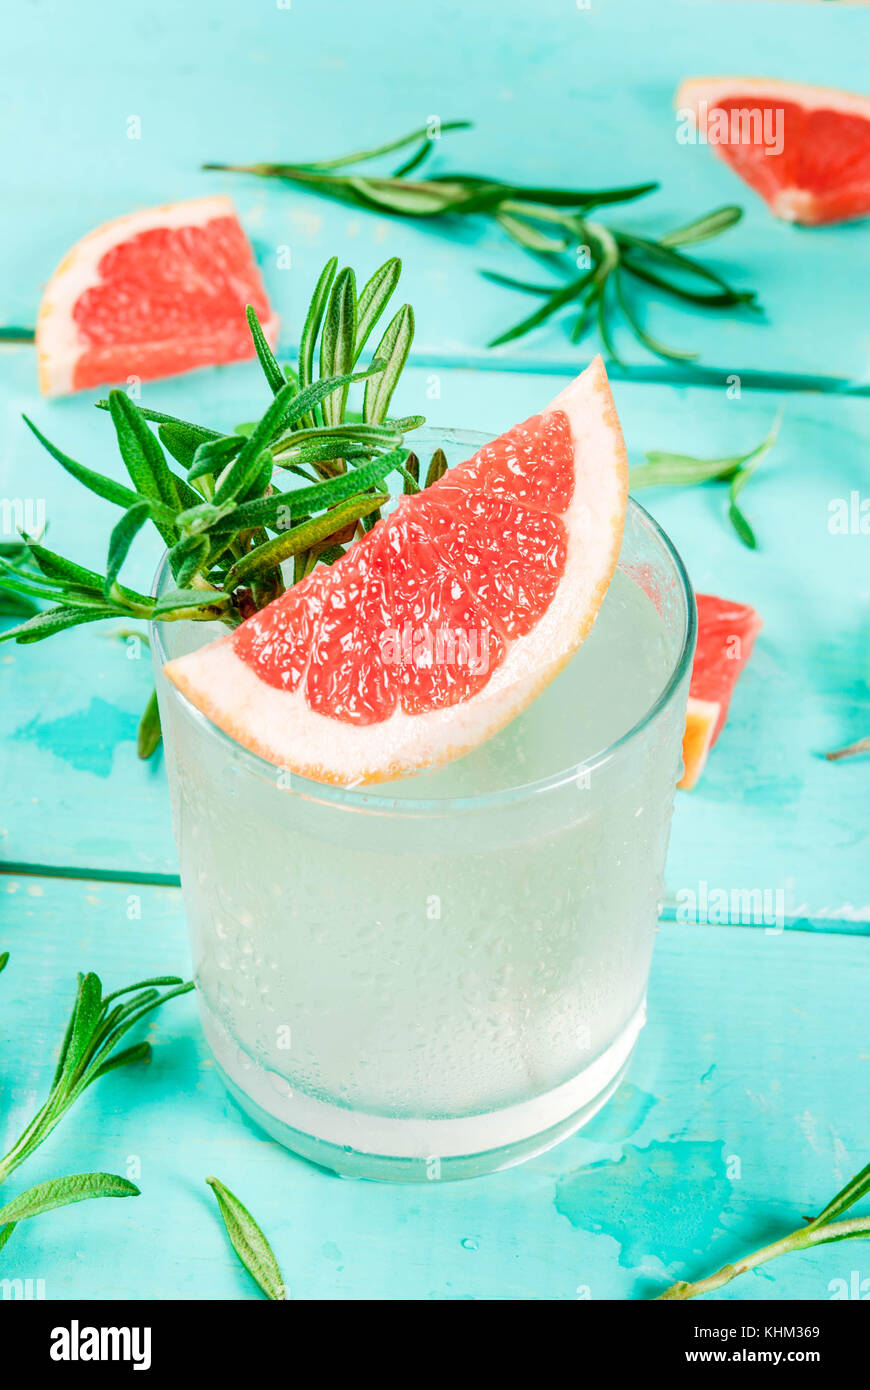 Alcohol drink, Rosemary, Grapefruit & Gin Cocktail, On light blue wooden table background, copy space - Stock Image